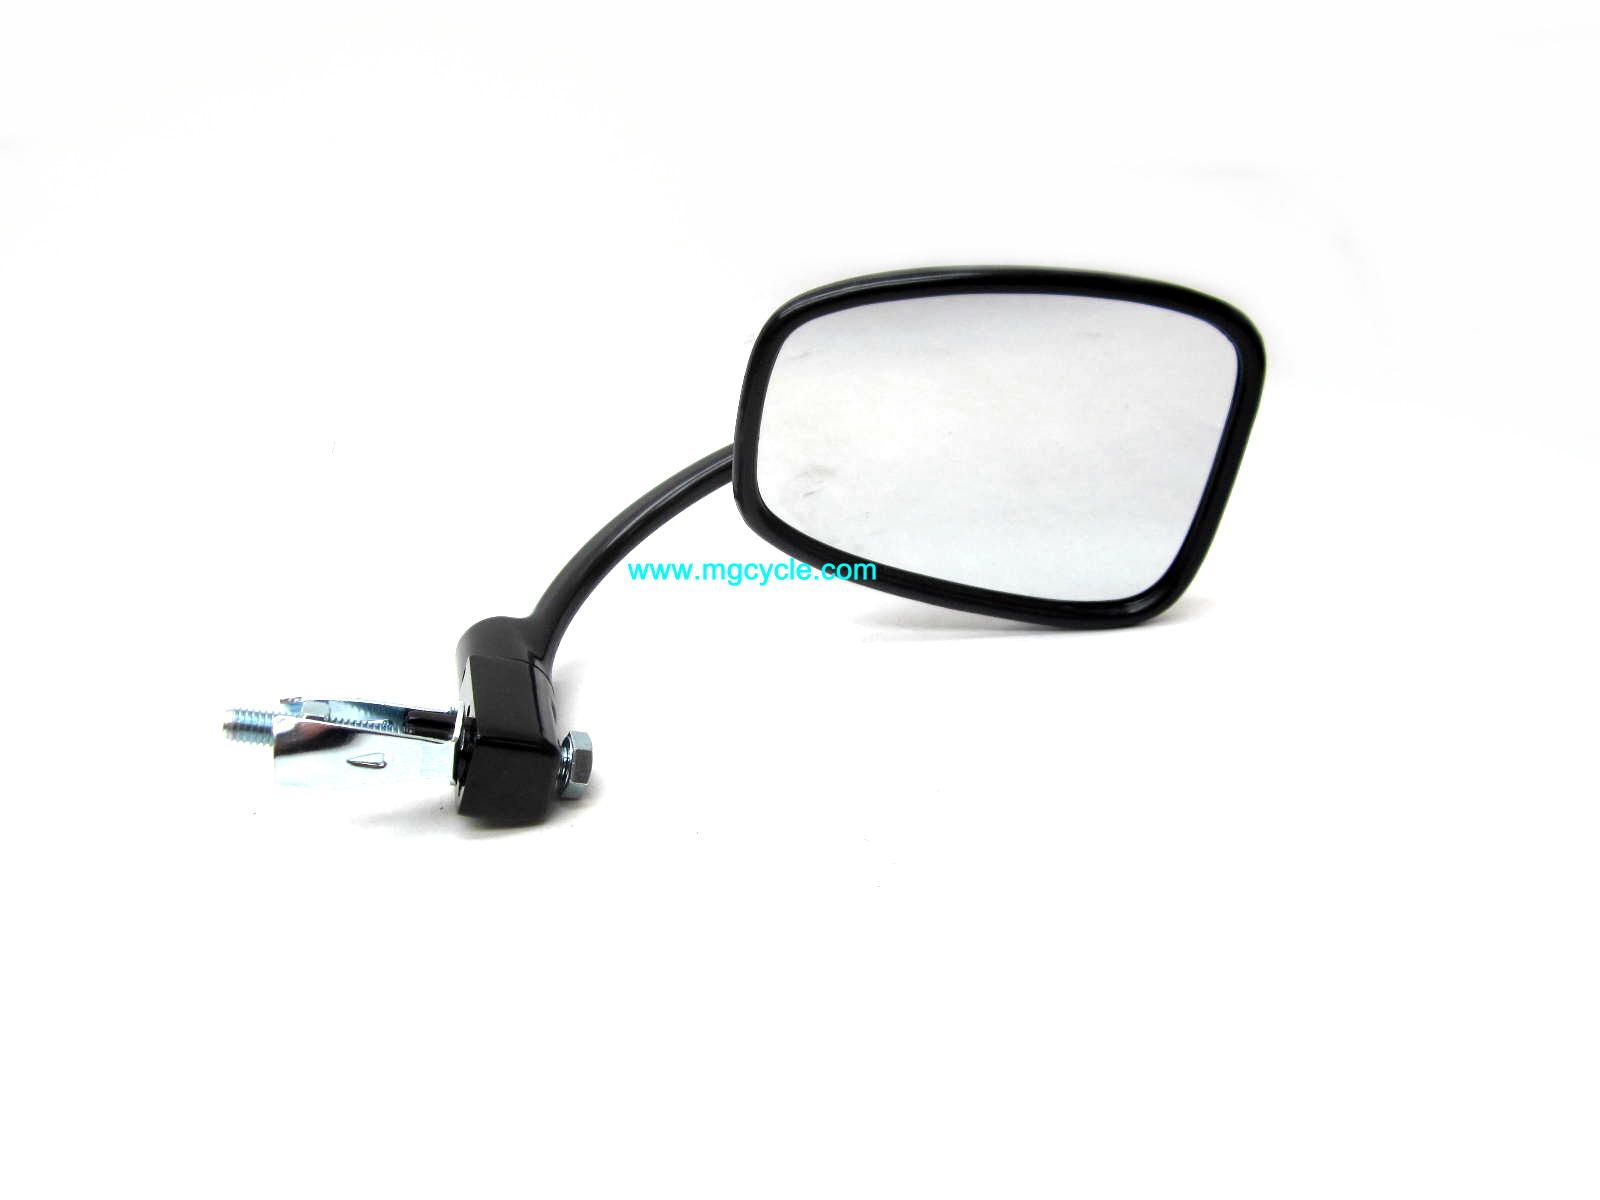 classic black handlebar end mirror, bar end mirror